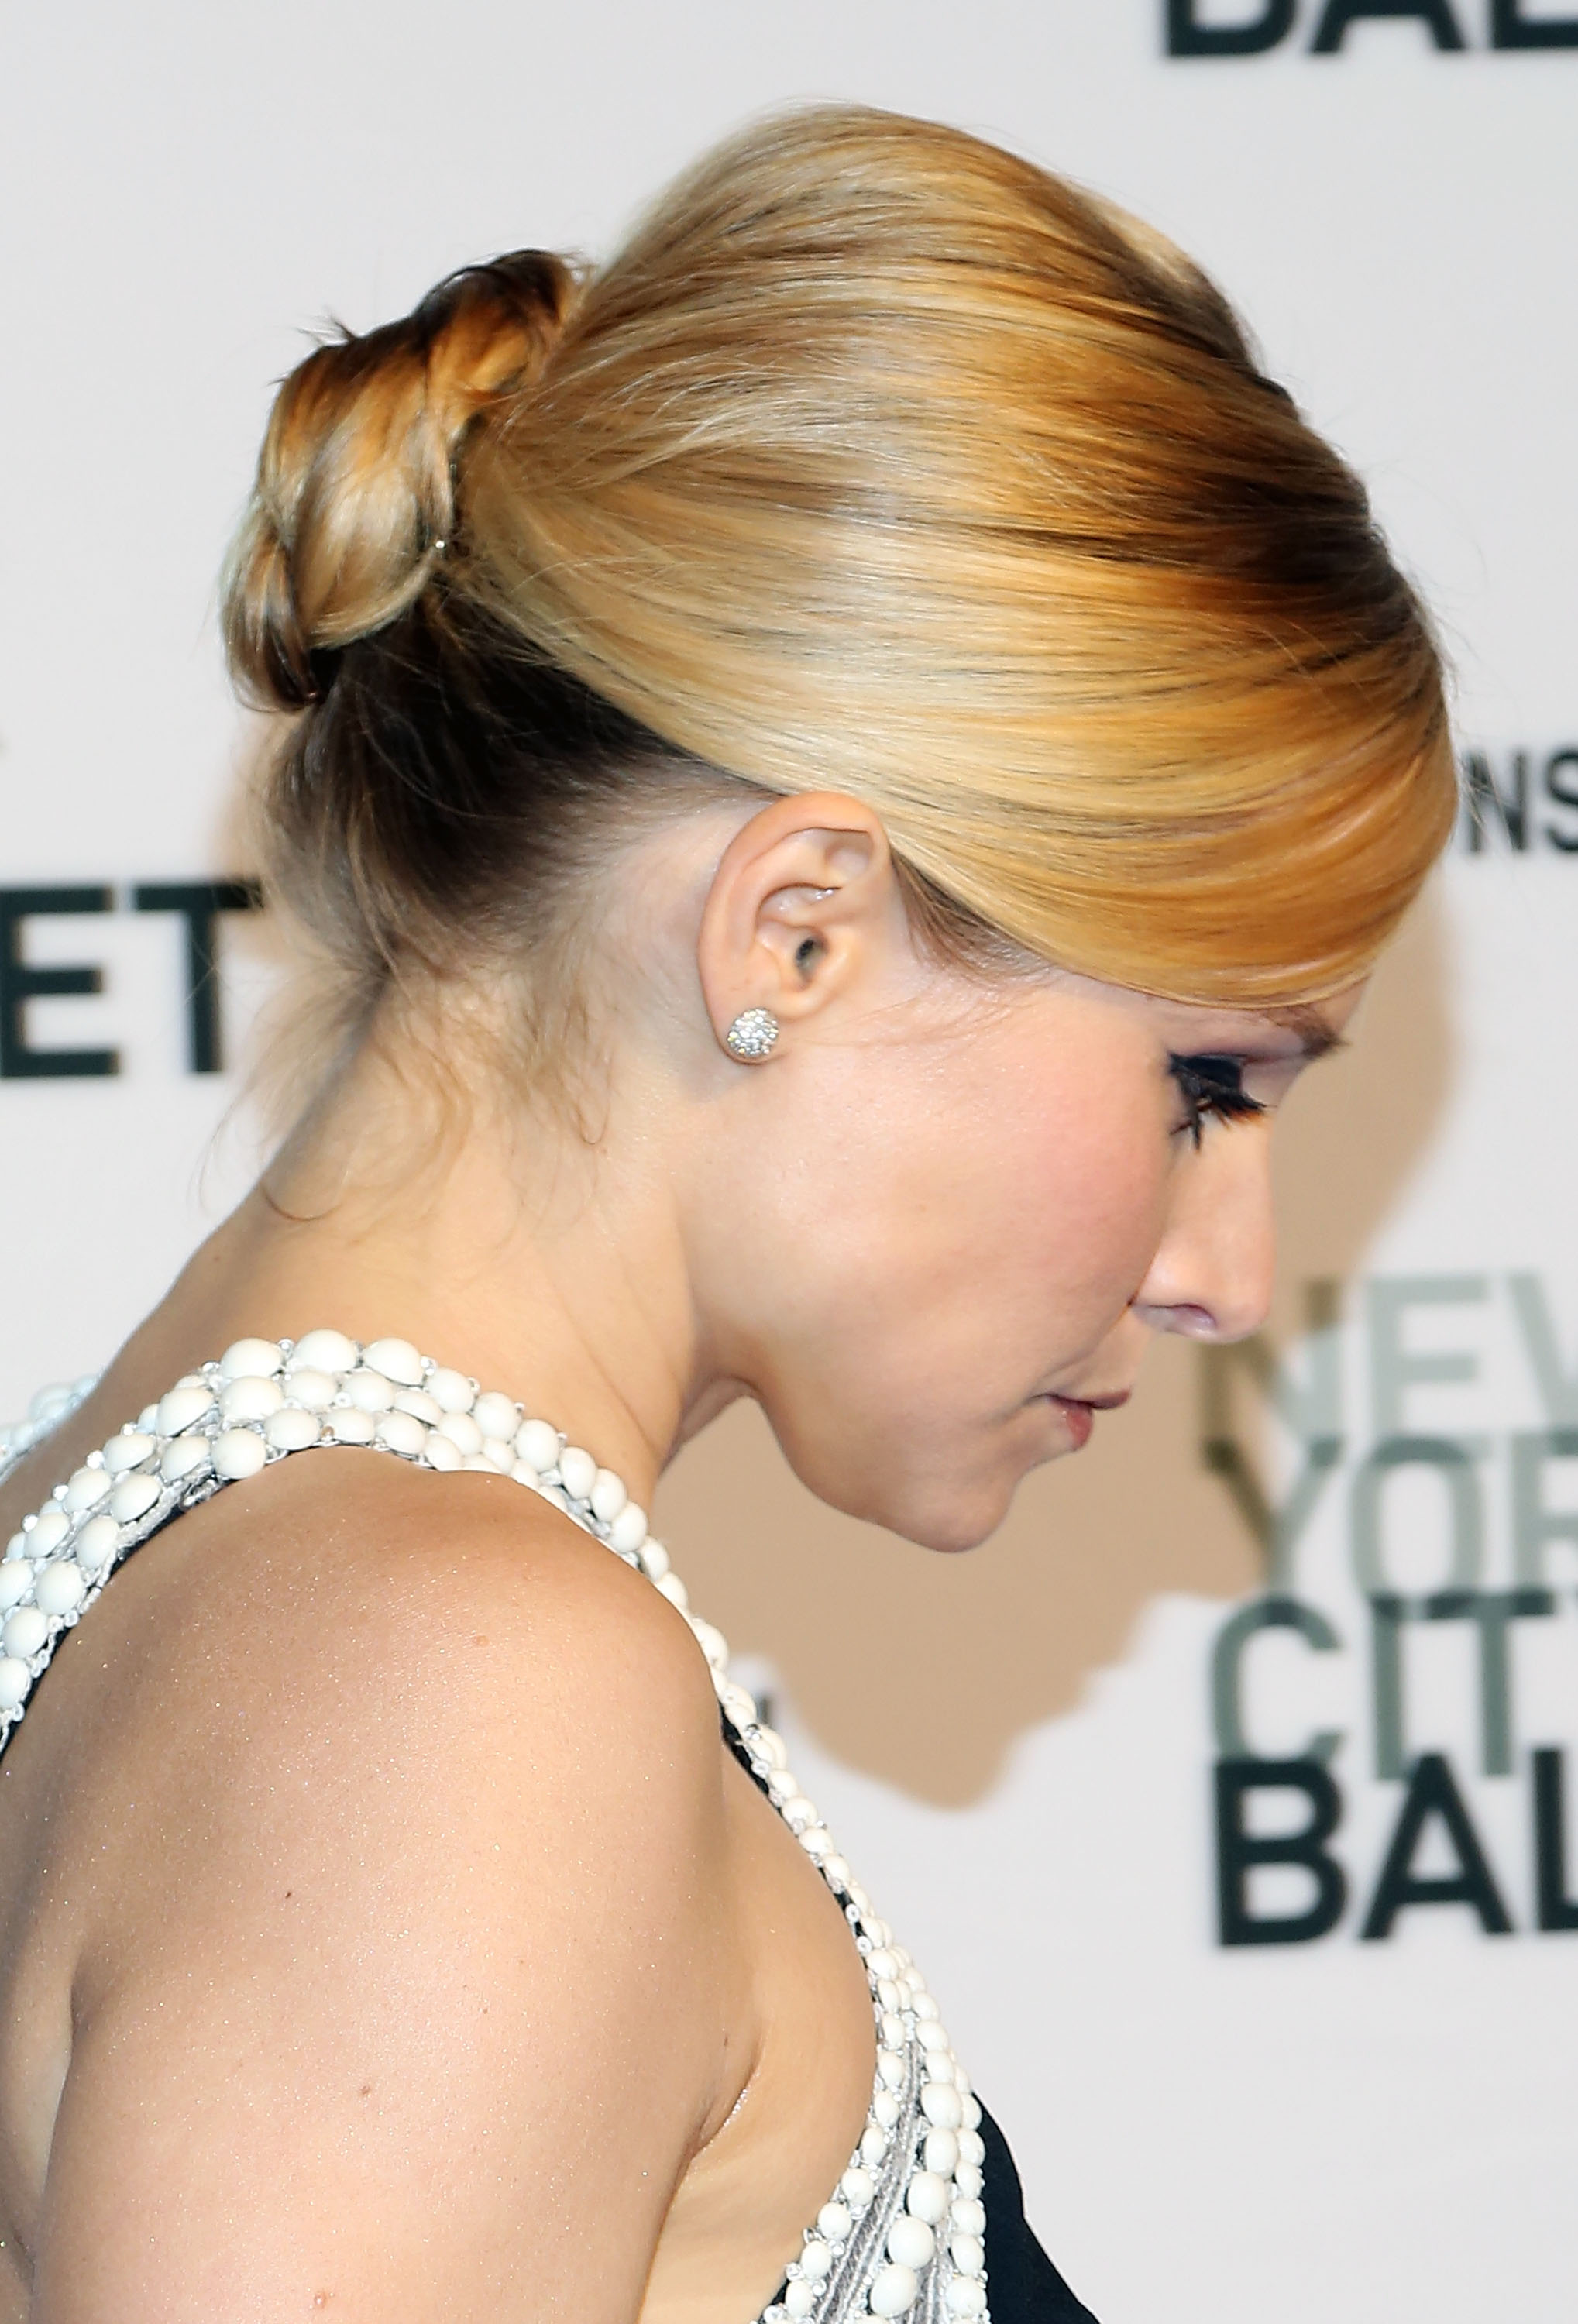 Easy Updo Hairstyles For Formal Events Elegant Updos To Try - Classic elegant hairstyle